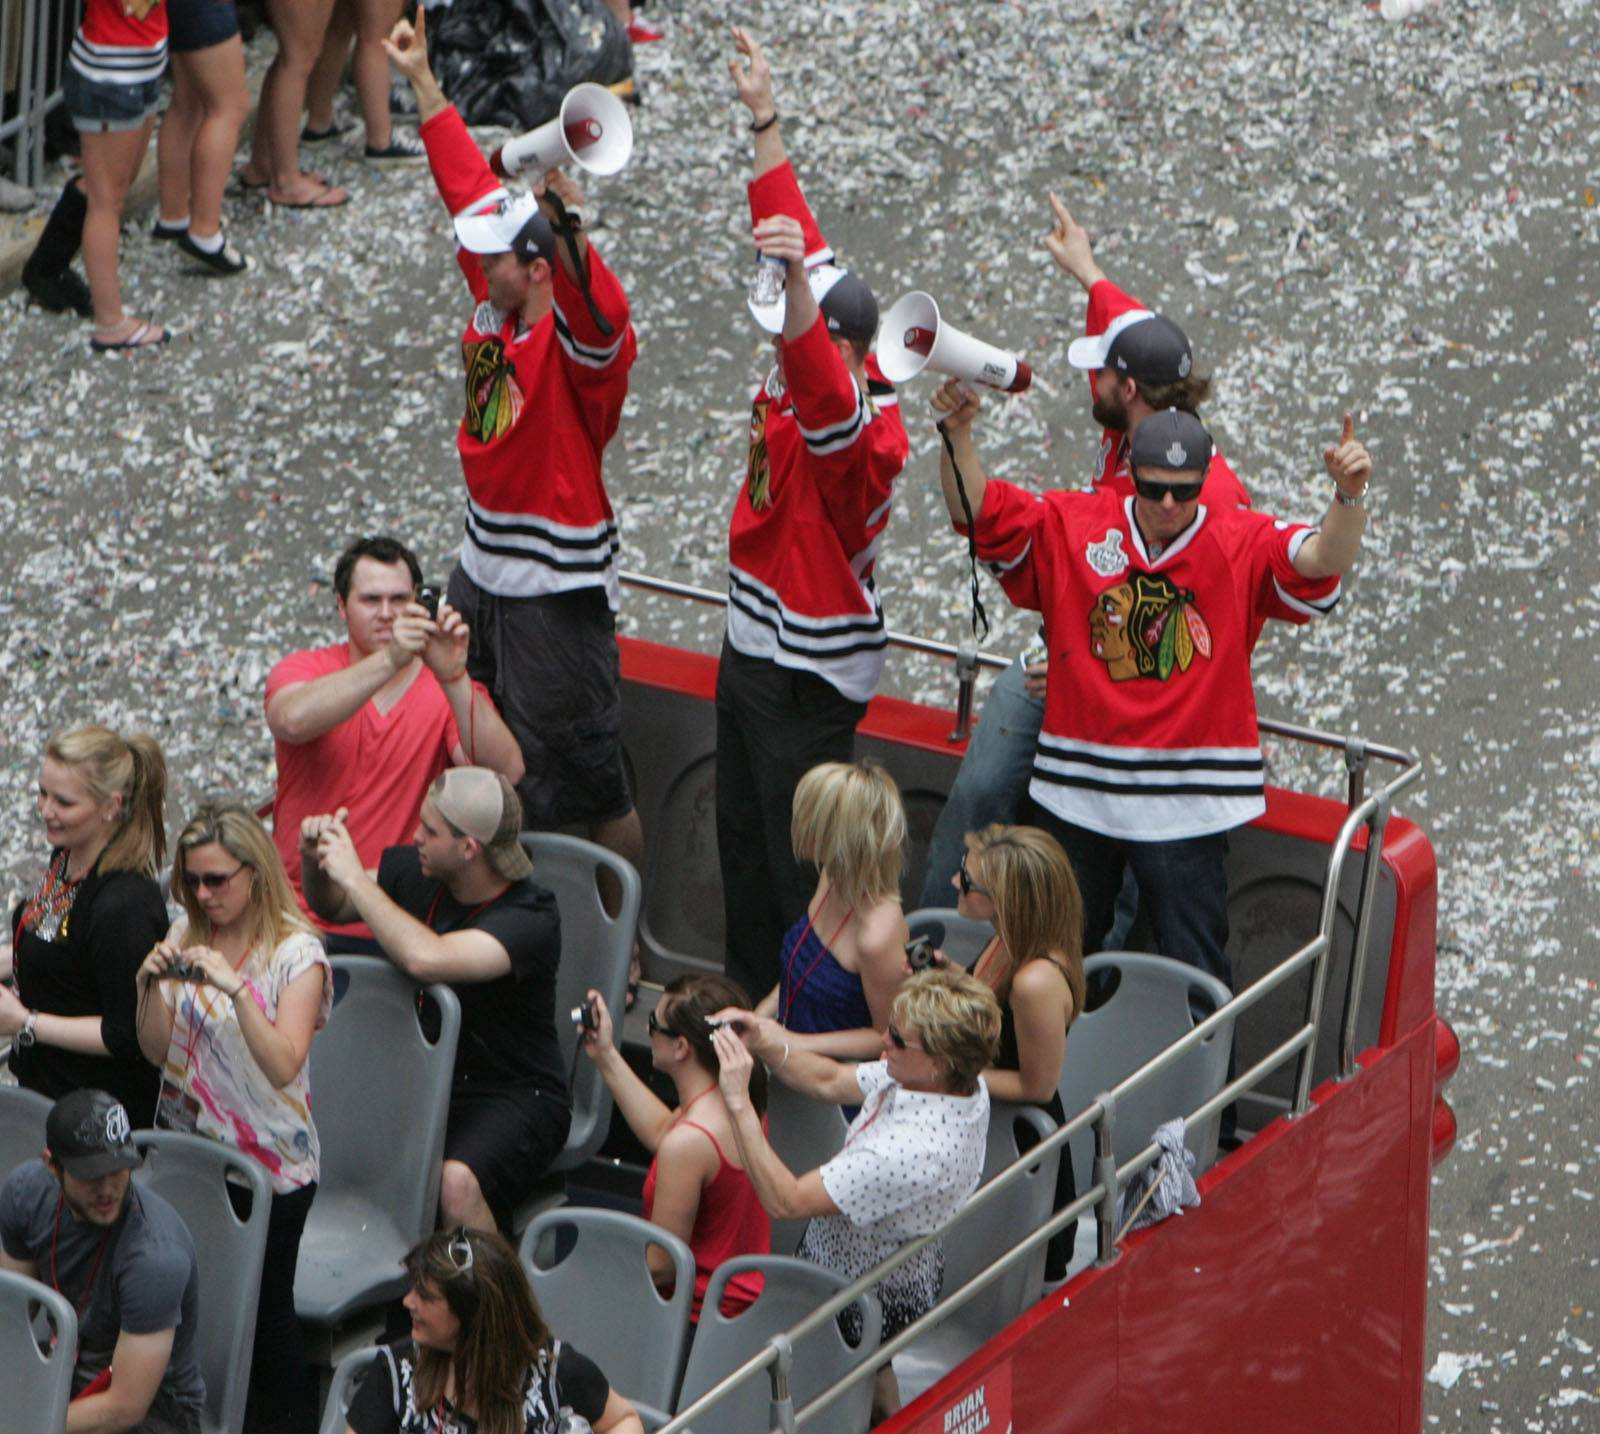 A view of the 2010 Chicago Blackhawks Stanley Cup celebration in Chicago.